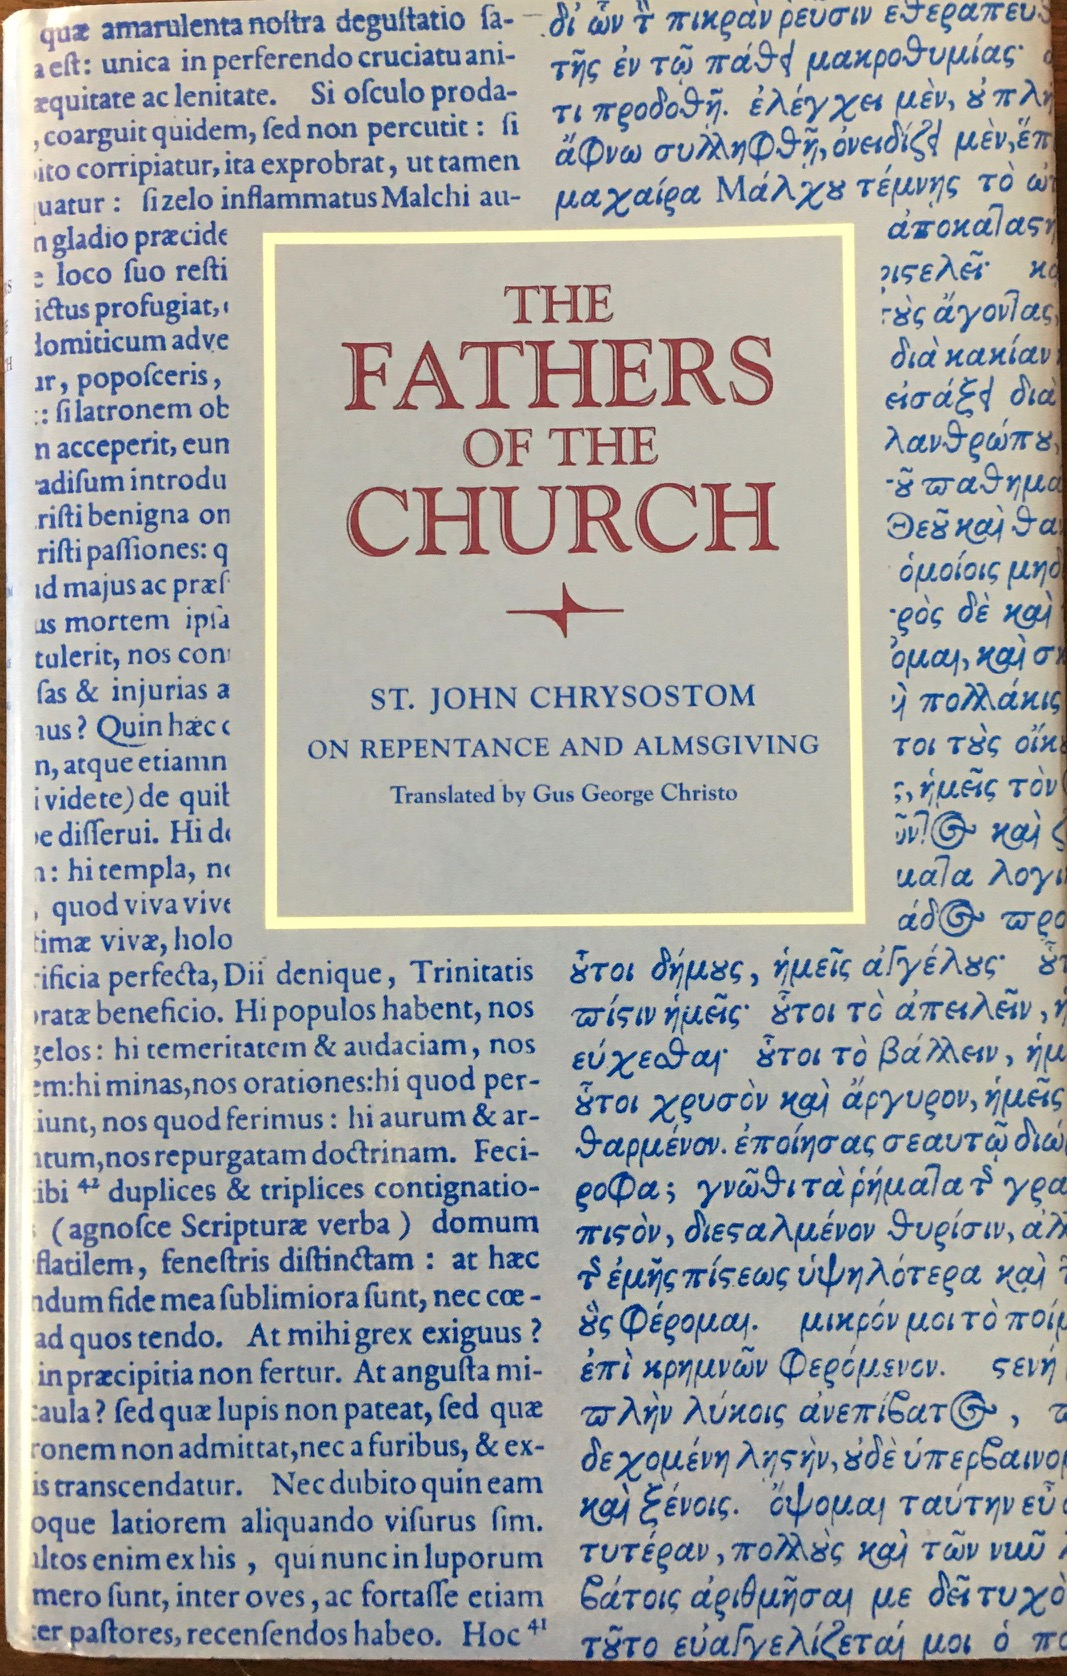 Image for St. John Chrysostom on Repentance and Almsgiving (The Fathers of the Church, Vol. 96)